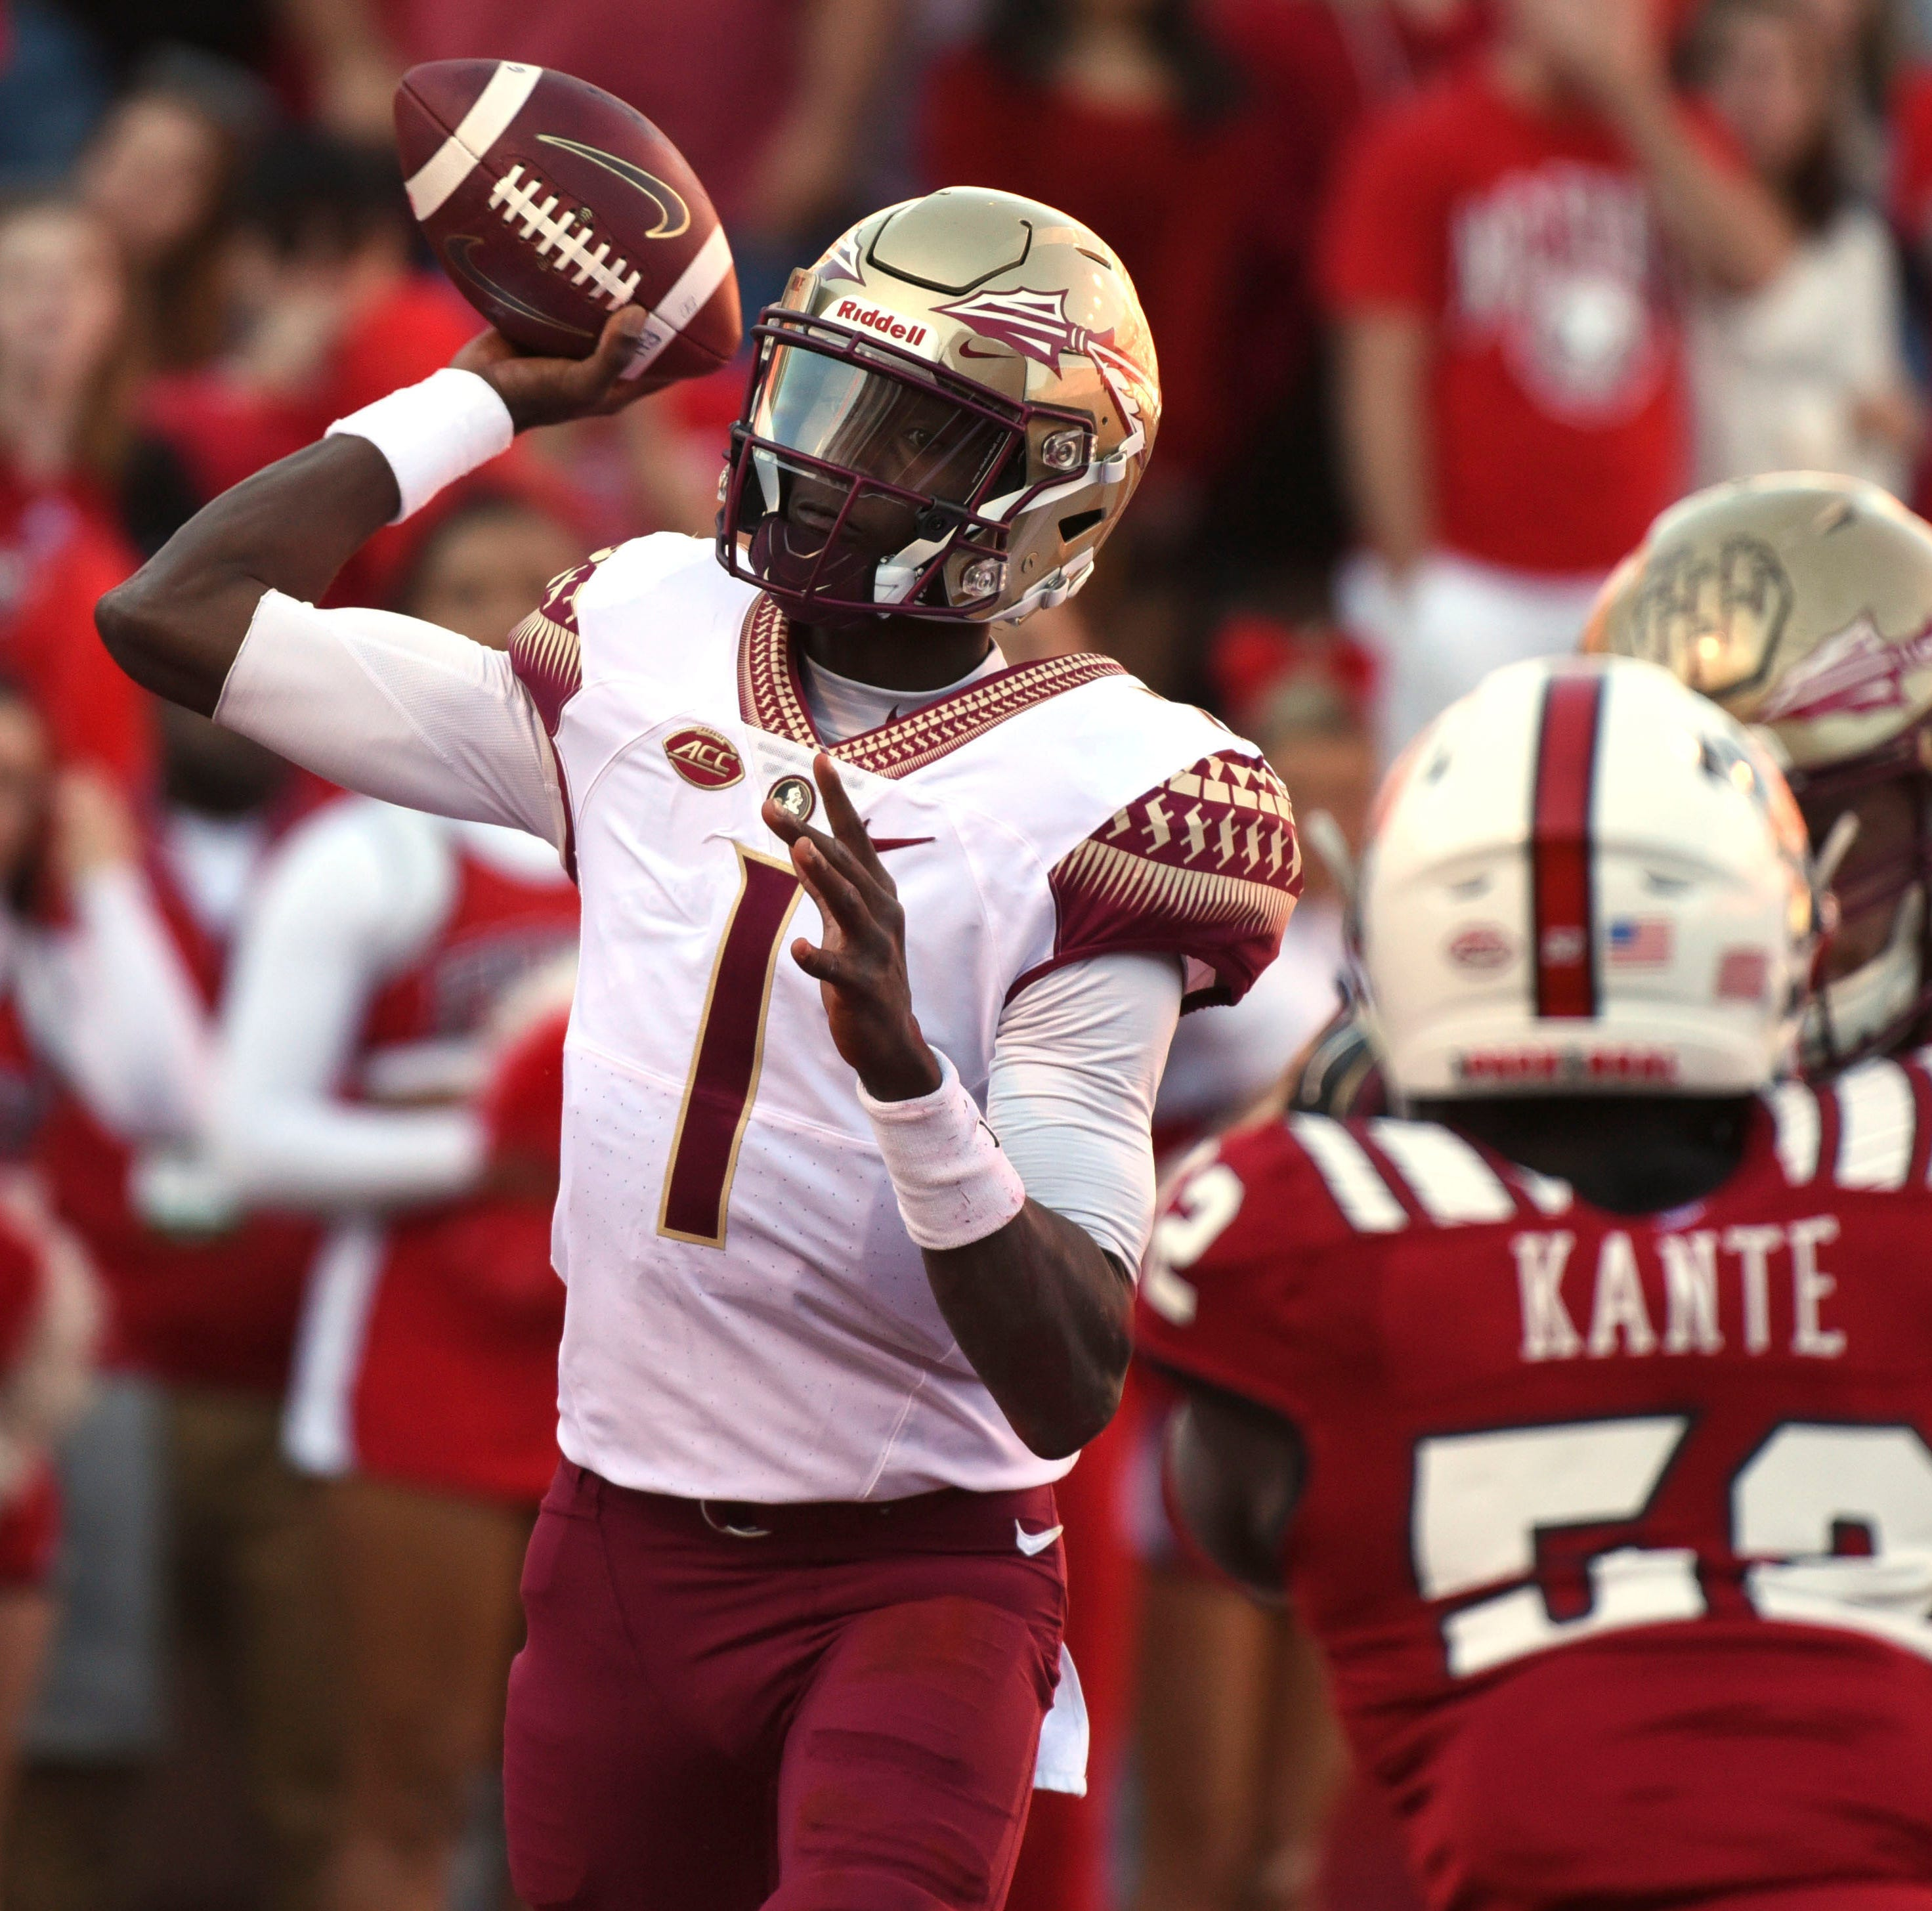 FSU football fans waiting to hear good news | Jim Henry